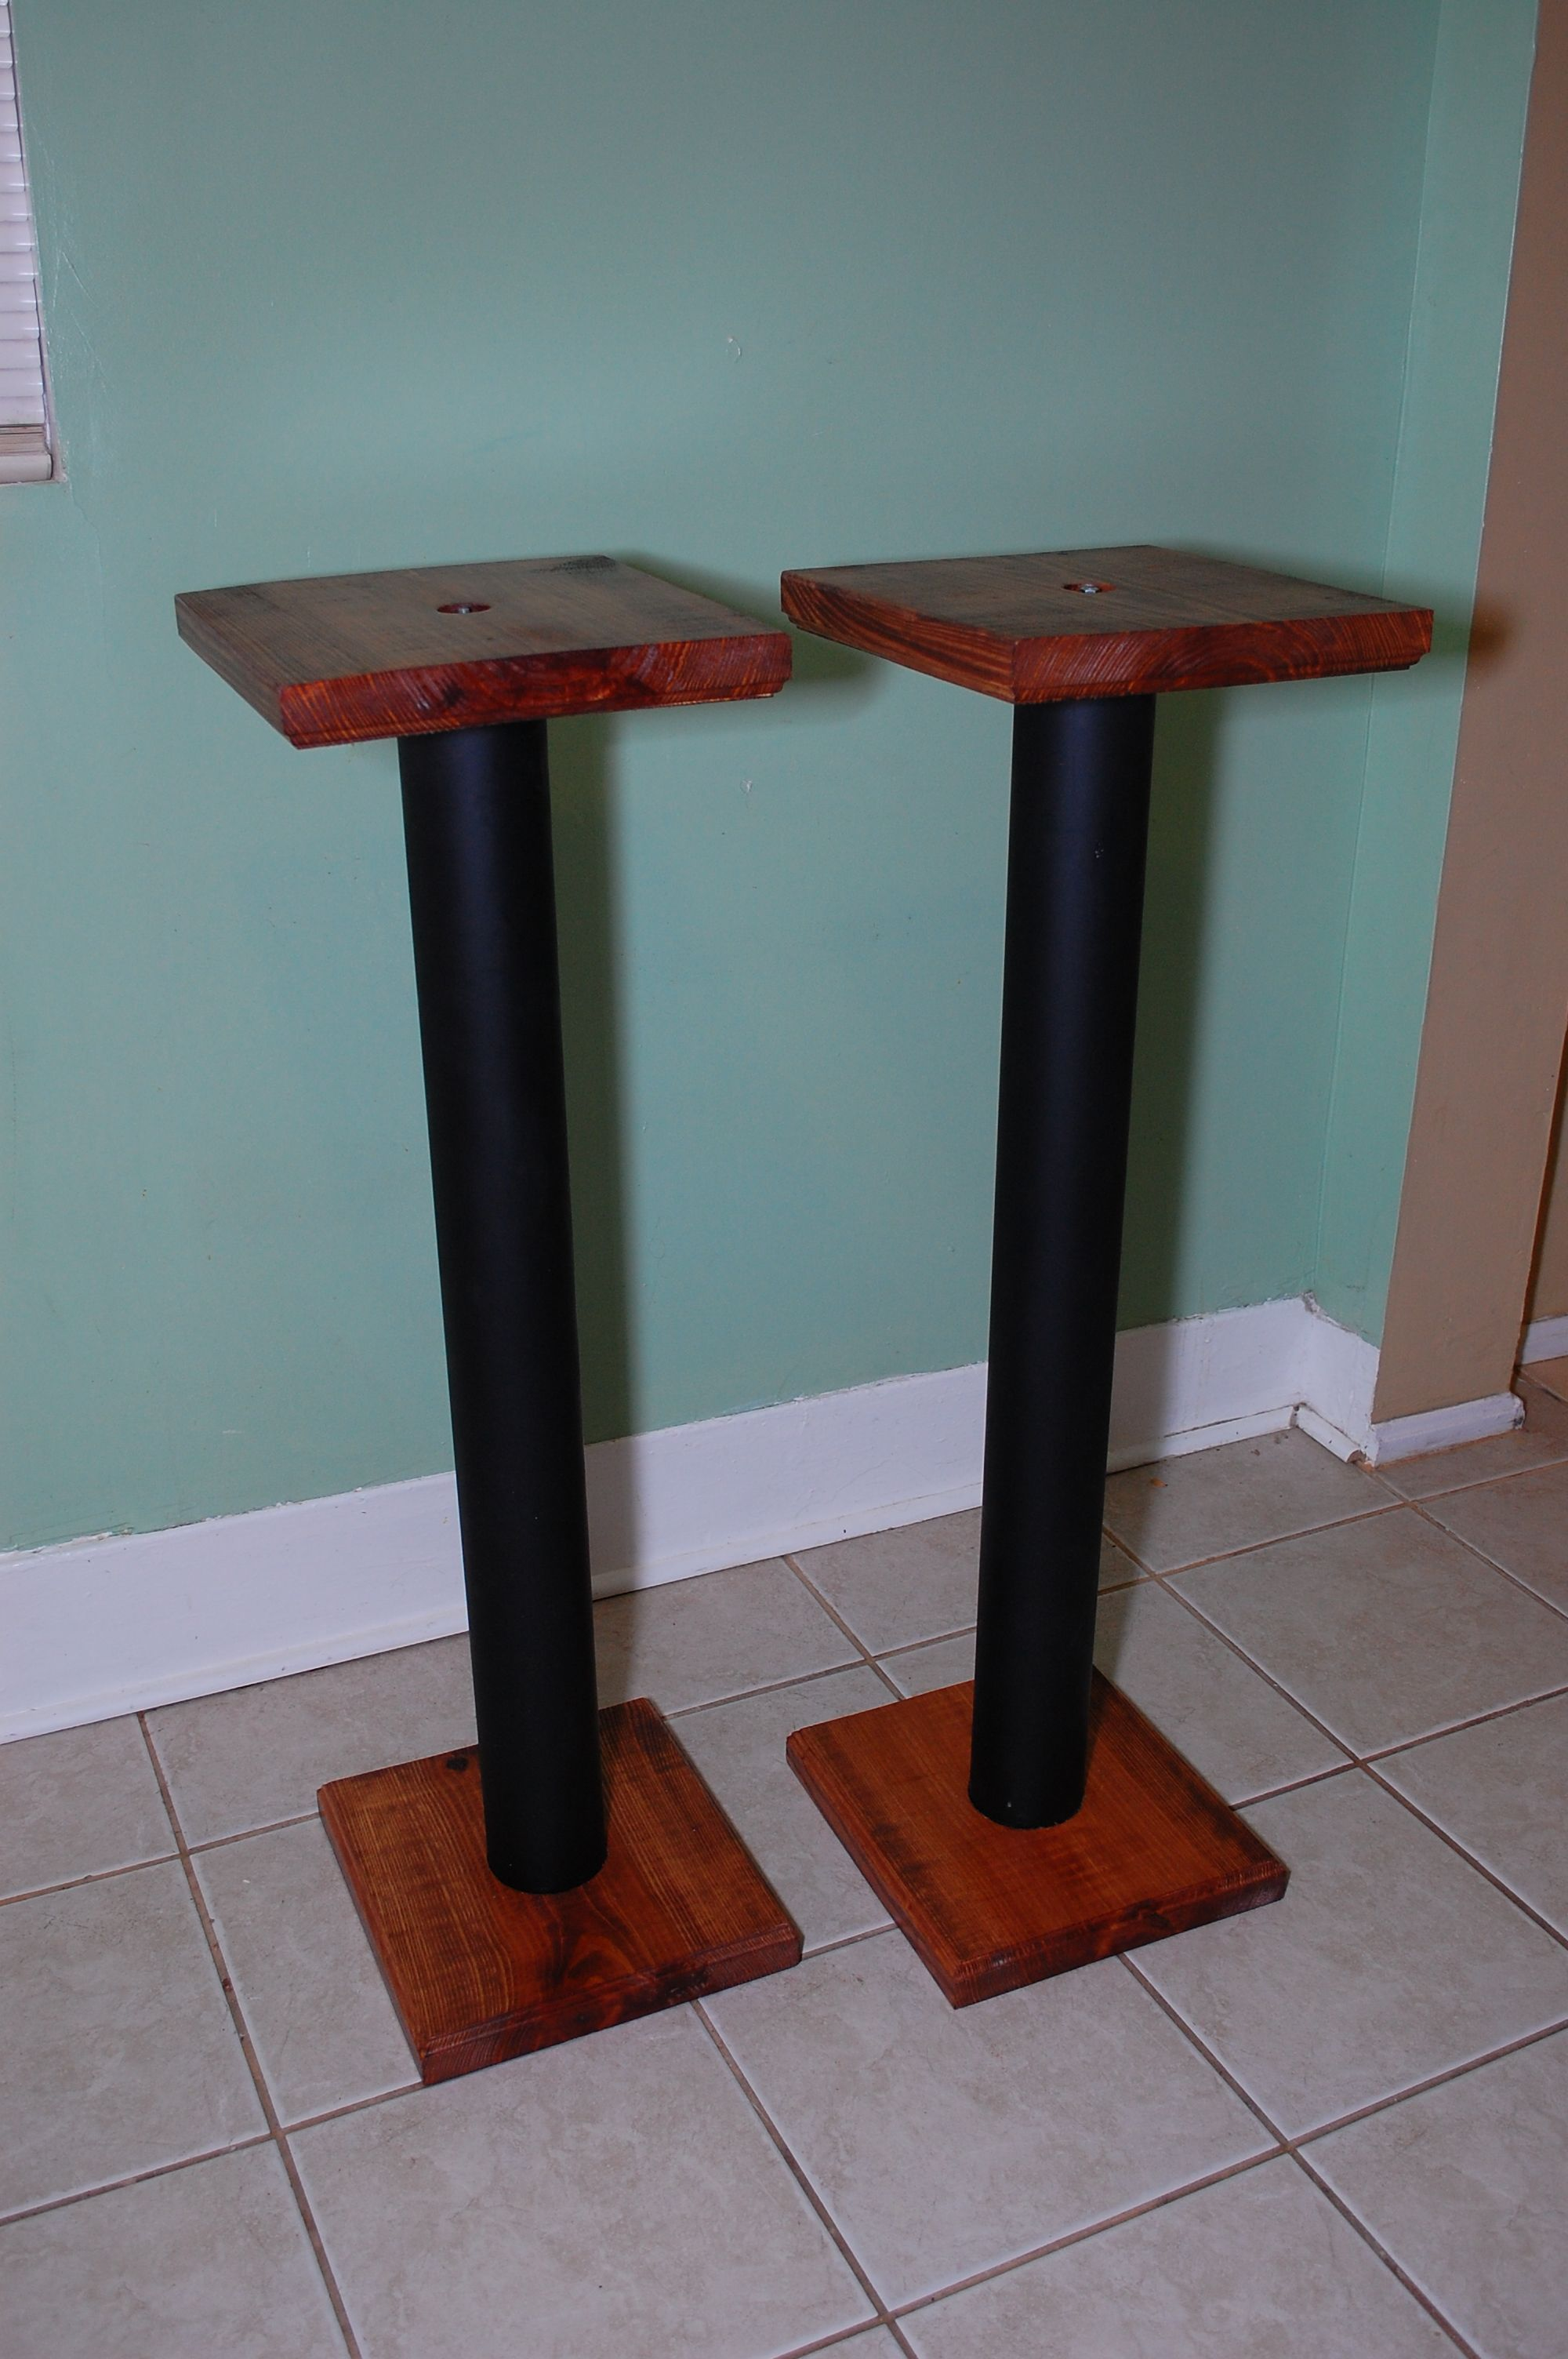 Jordan Colburn Great Diy Speaker Stands For 30 Clck